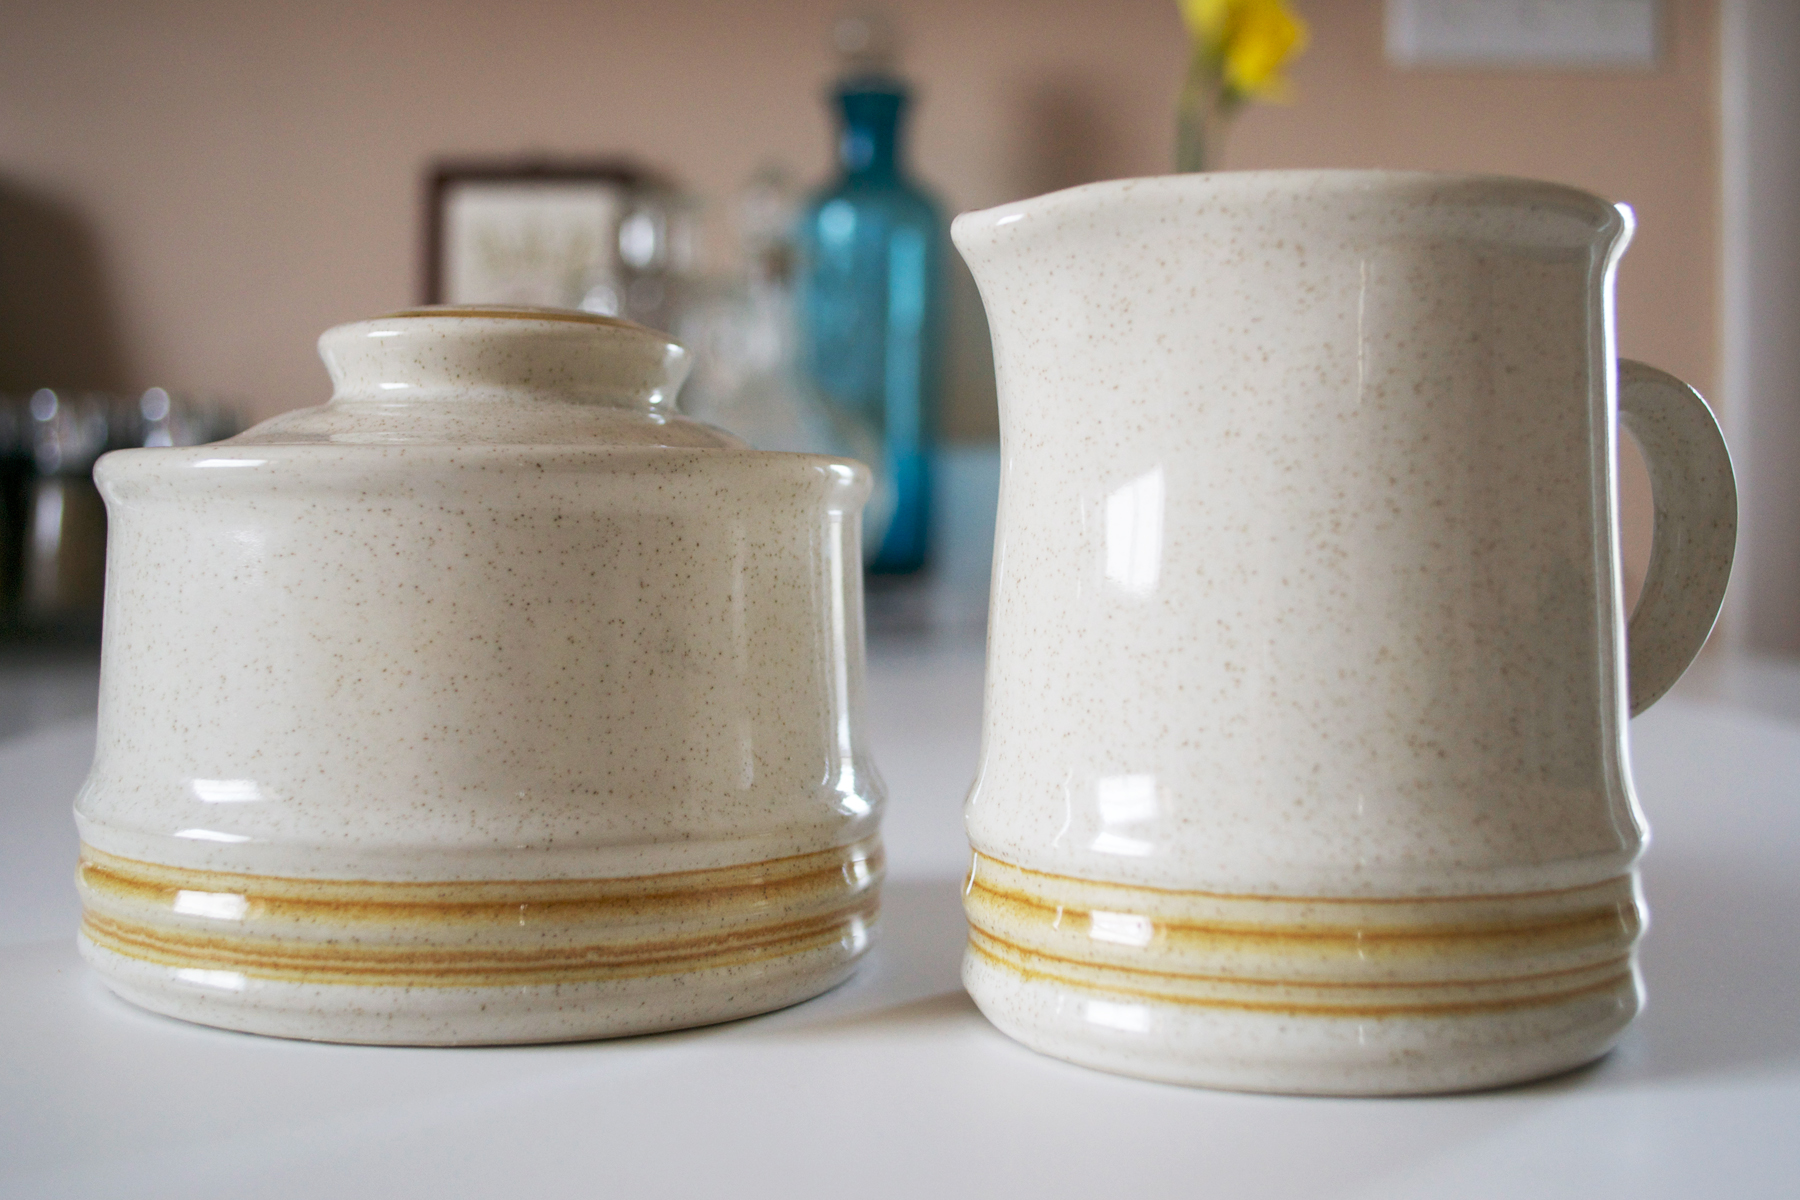 Here's a close up of the sugar and creamer set.